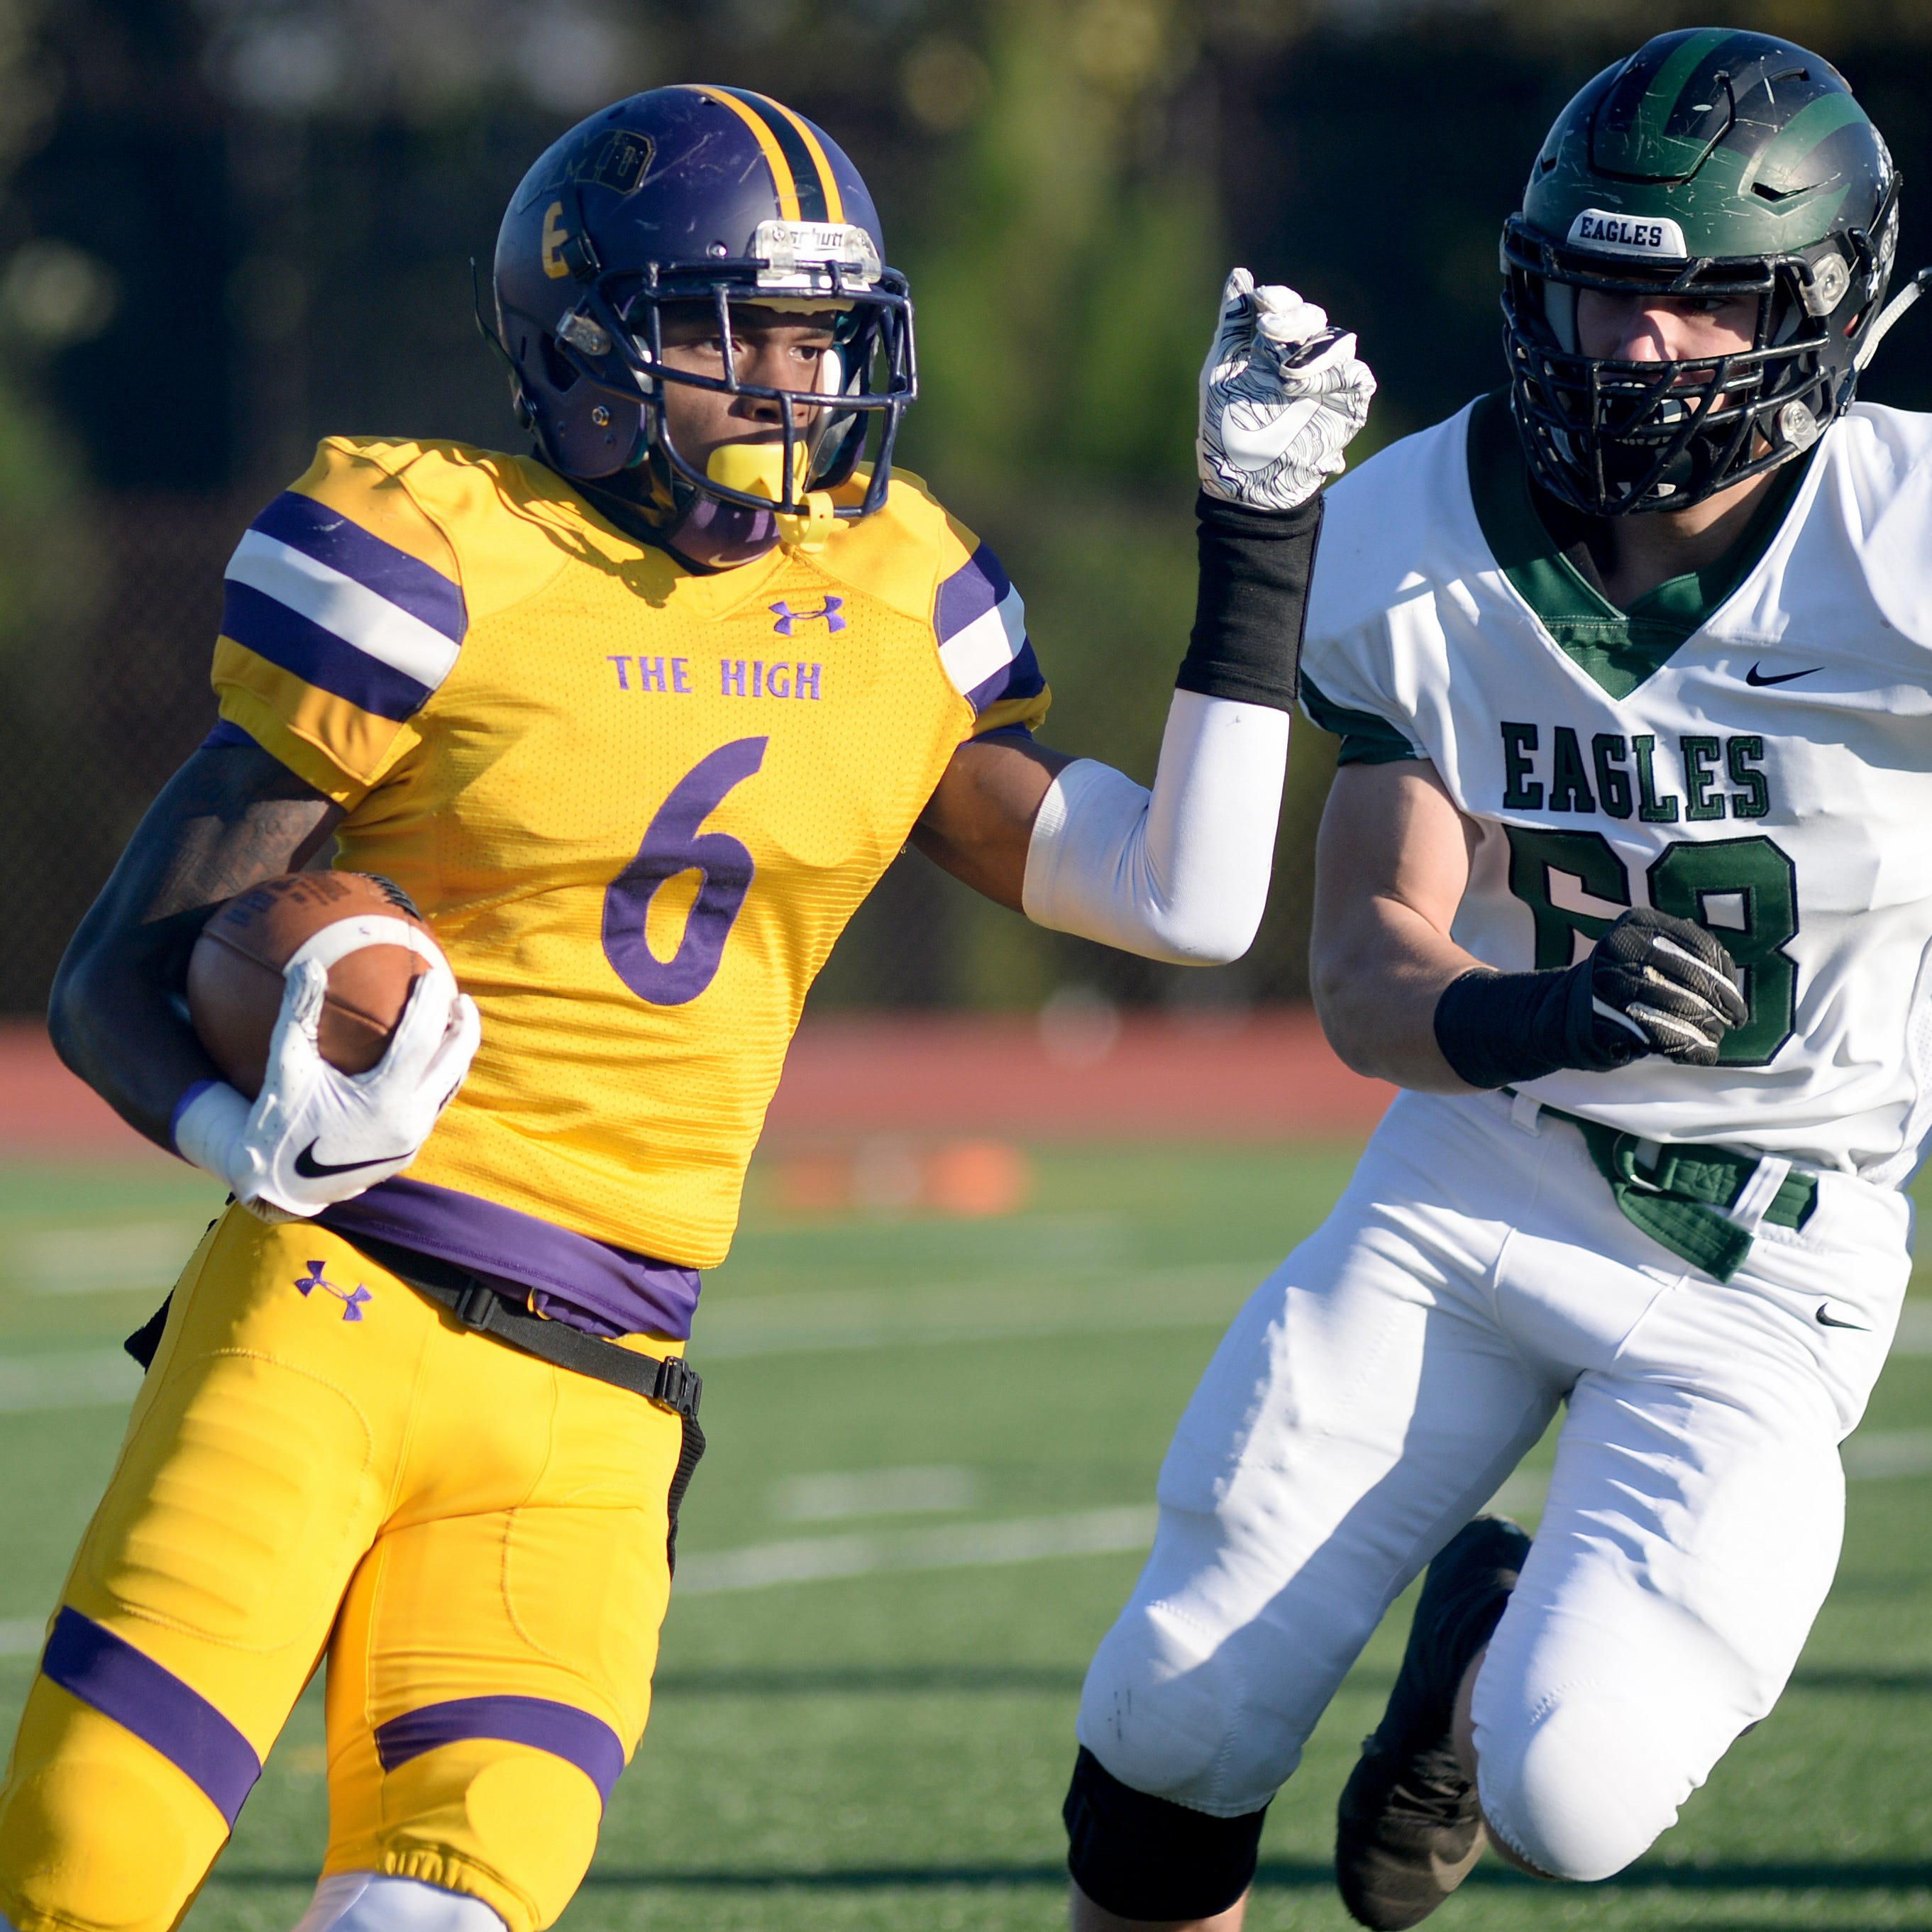 South Jersey Football: Camden toughs it out to reach championship